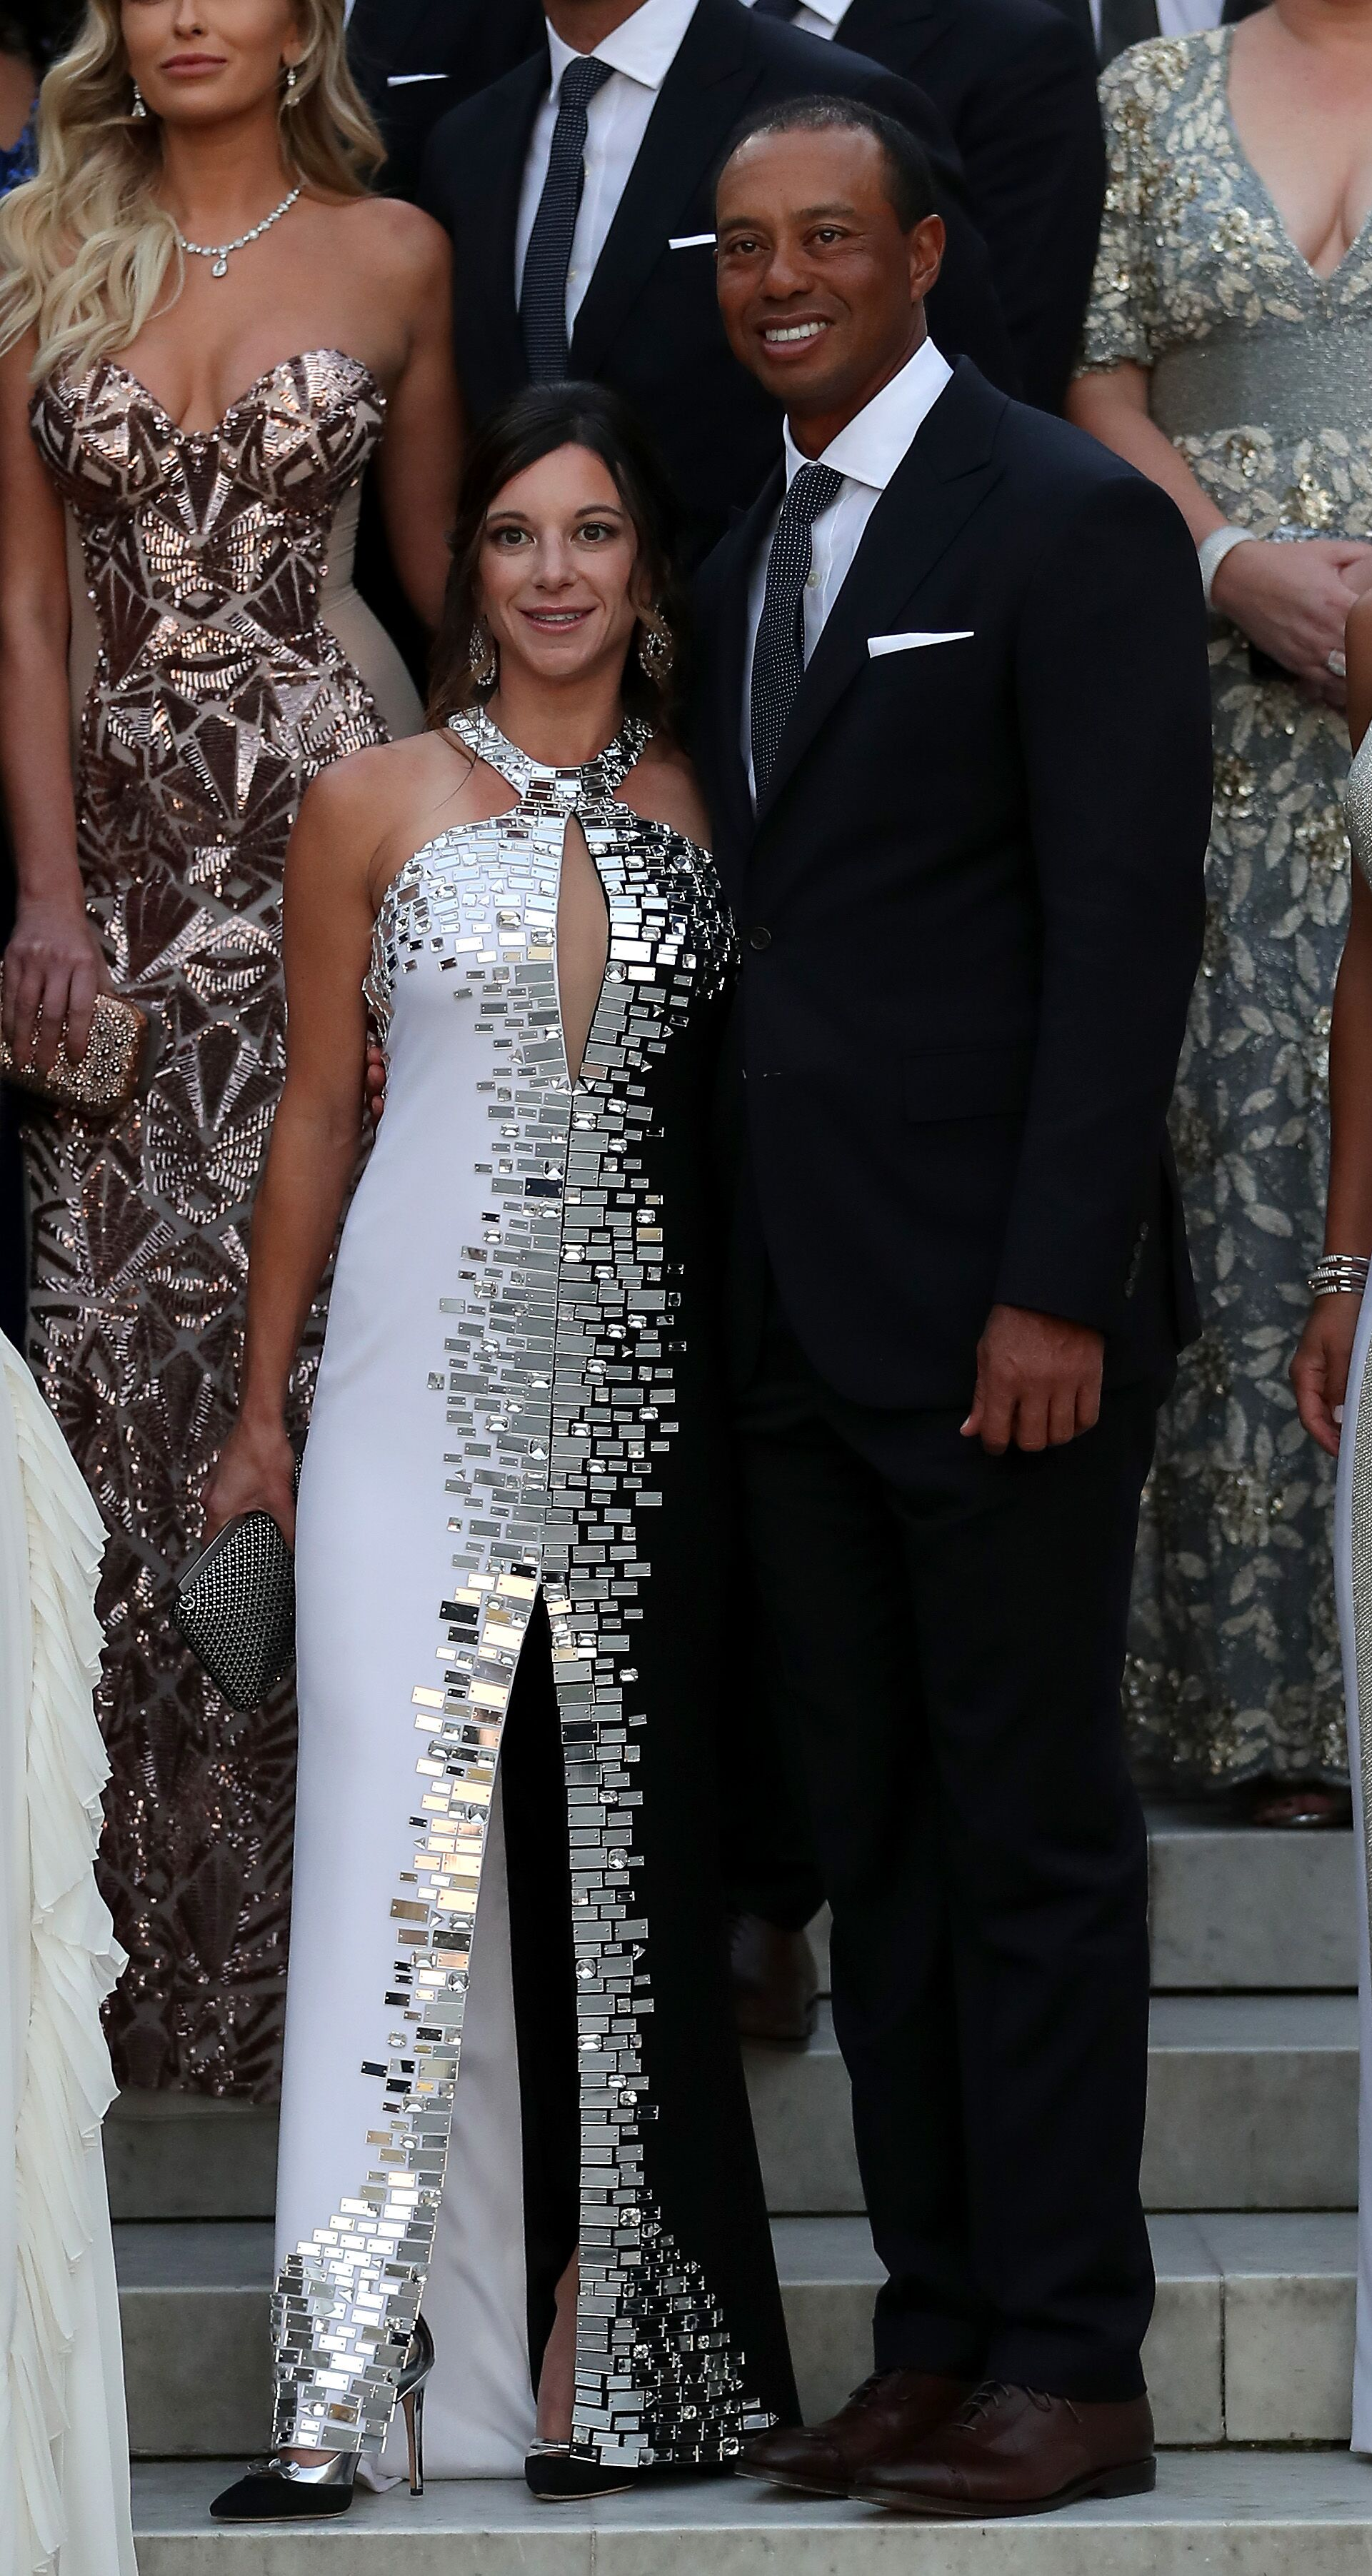 Tiger Woods and Erica Herman at the 2018 Ryder Cup Gala/ Source: Getty Images